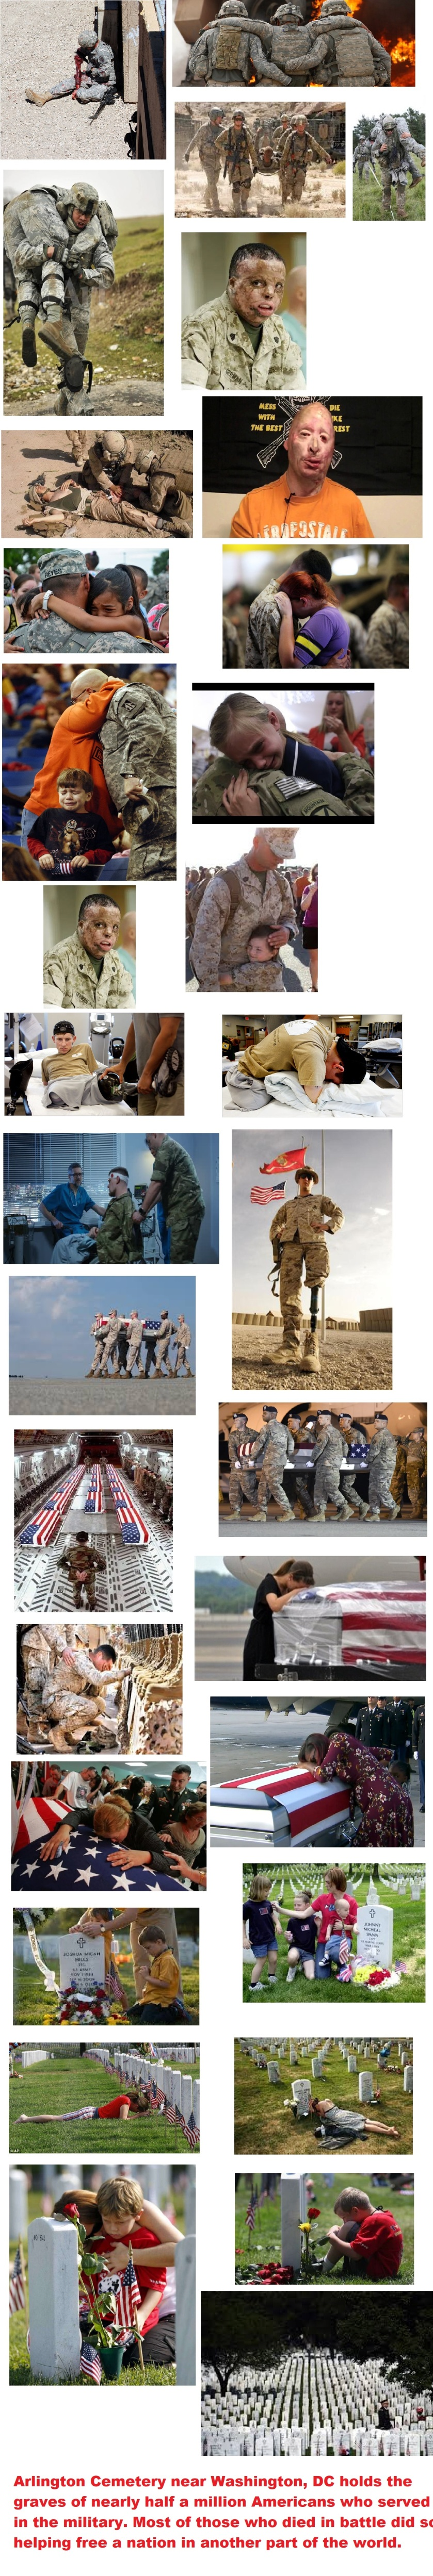 US COST COLLAGE to help other nations